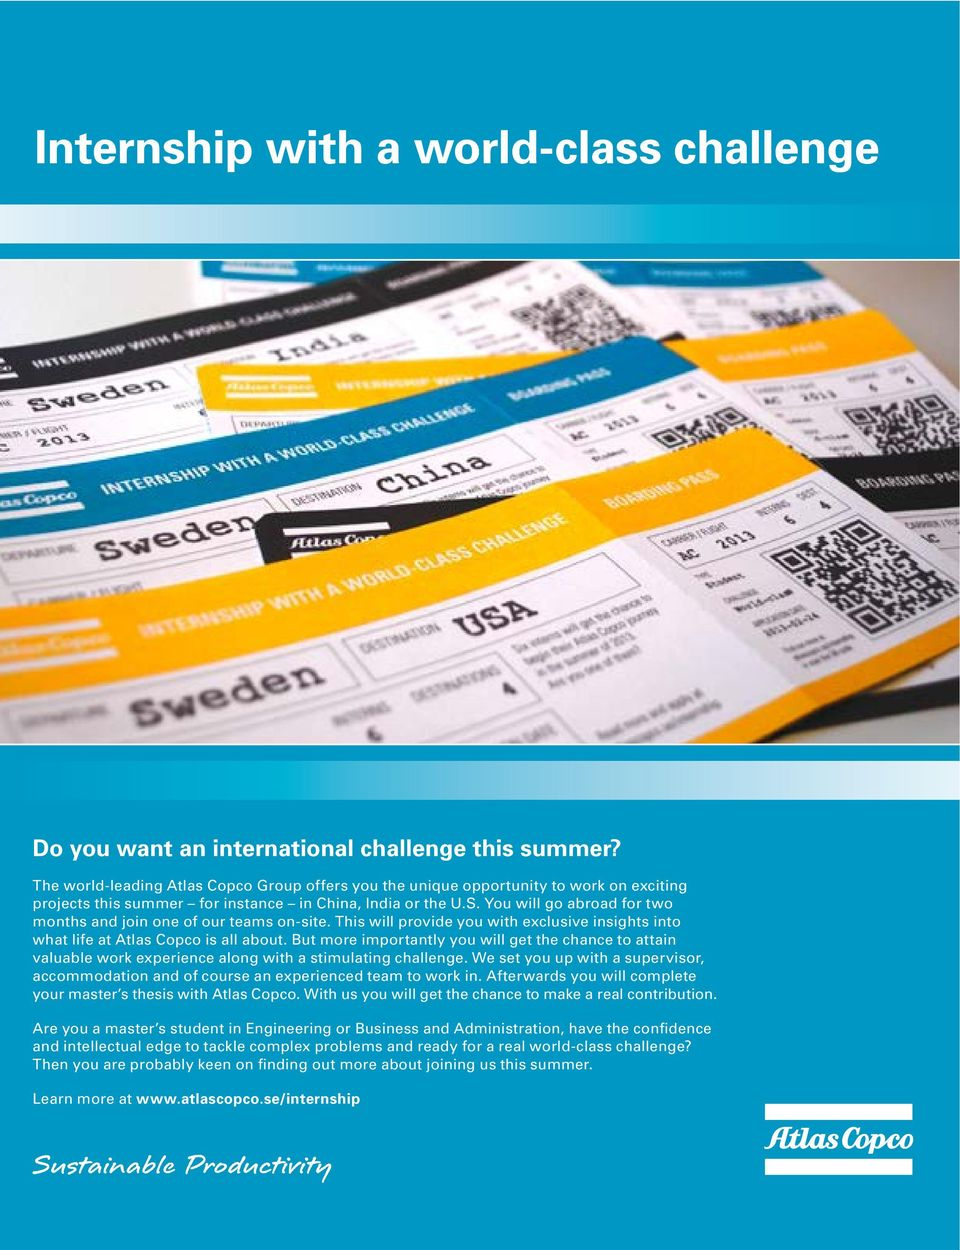 You will go abroad for two months and join one of our teams on-site. This will provide you with exclusive insights into what life at Atlas Copco is all about.